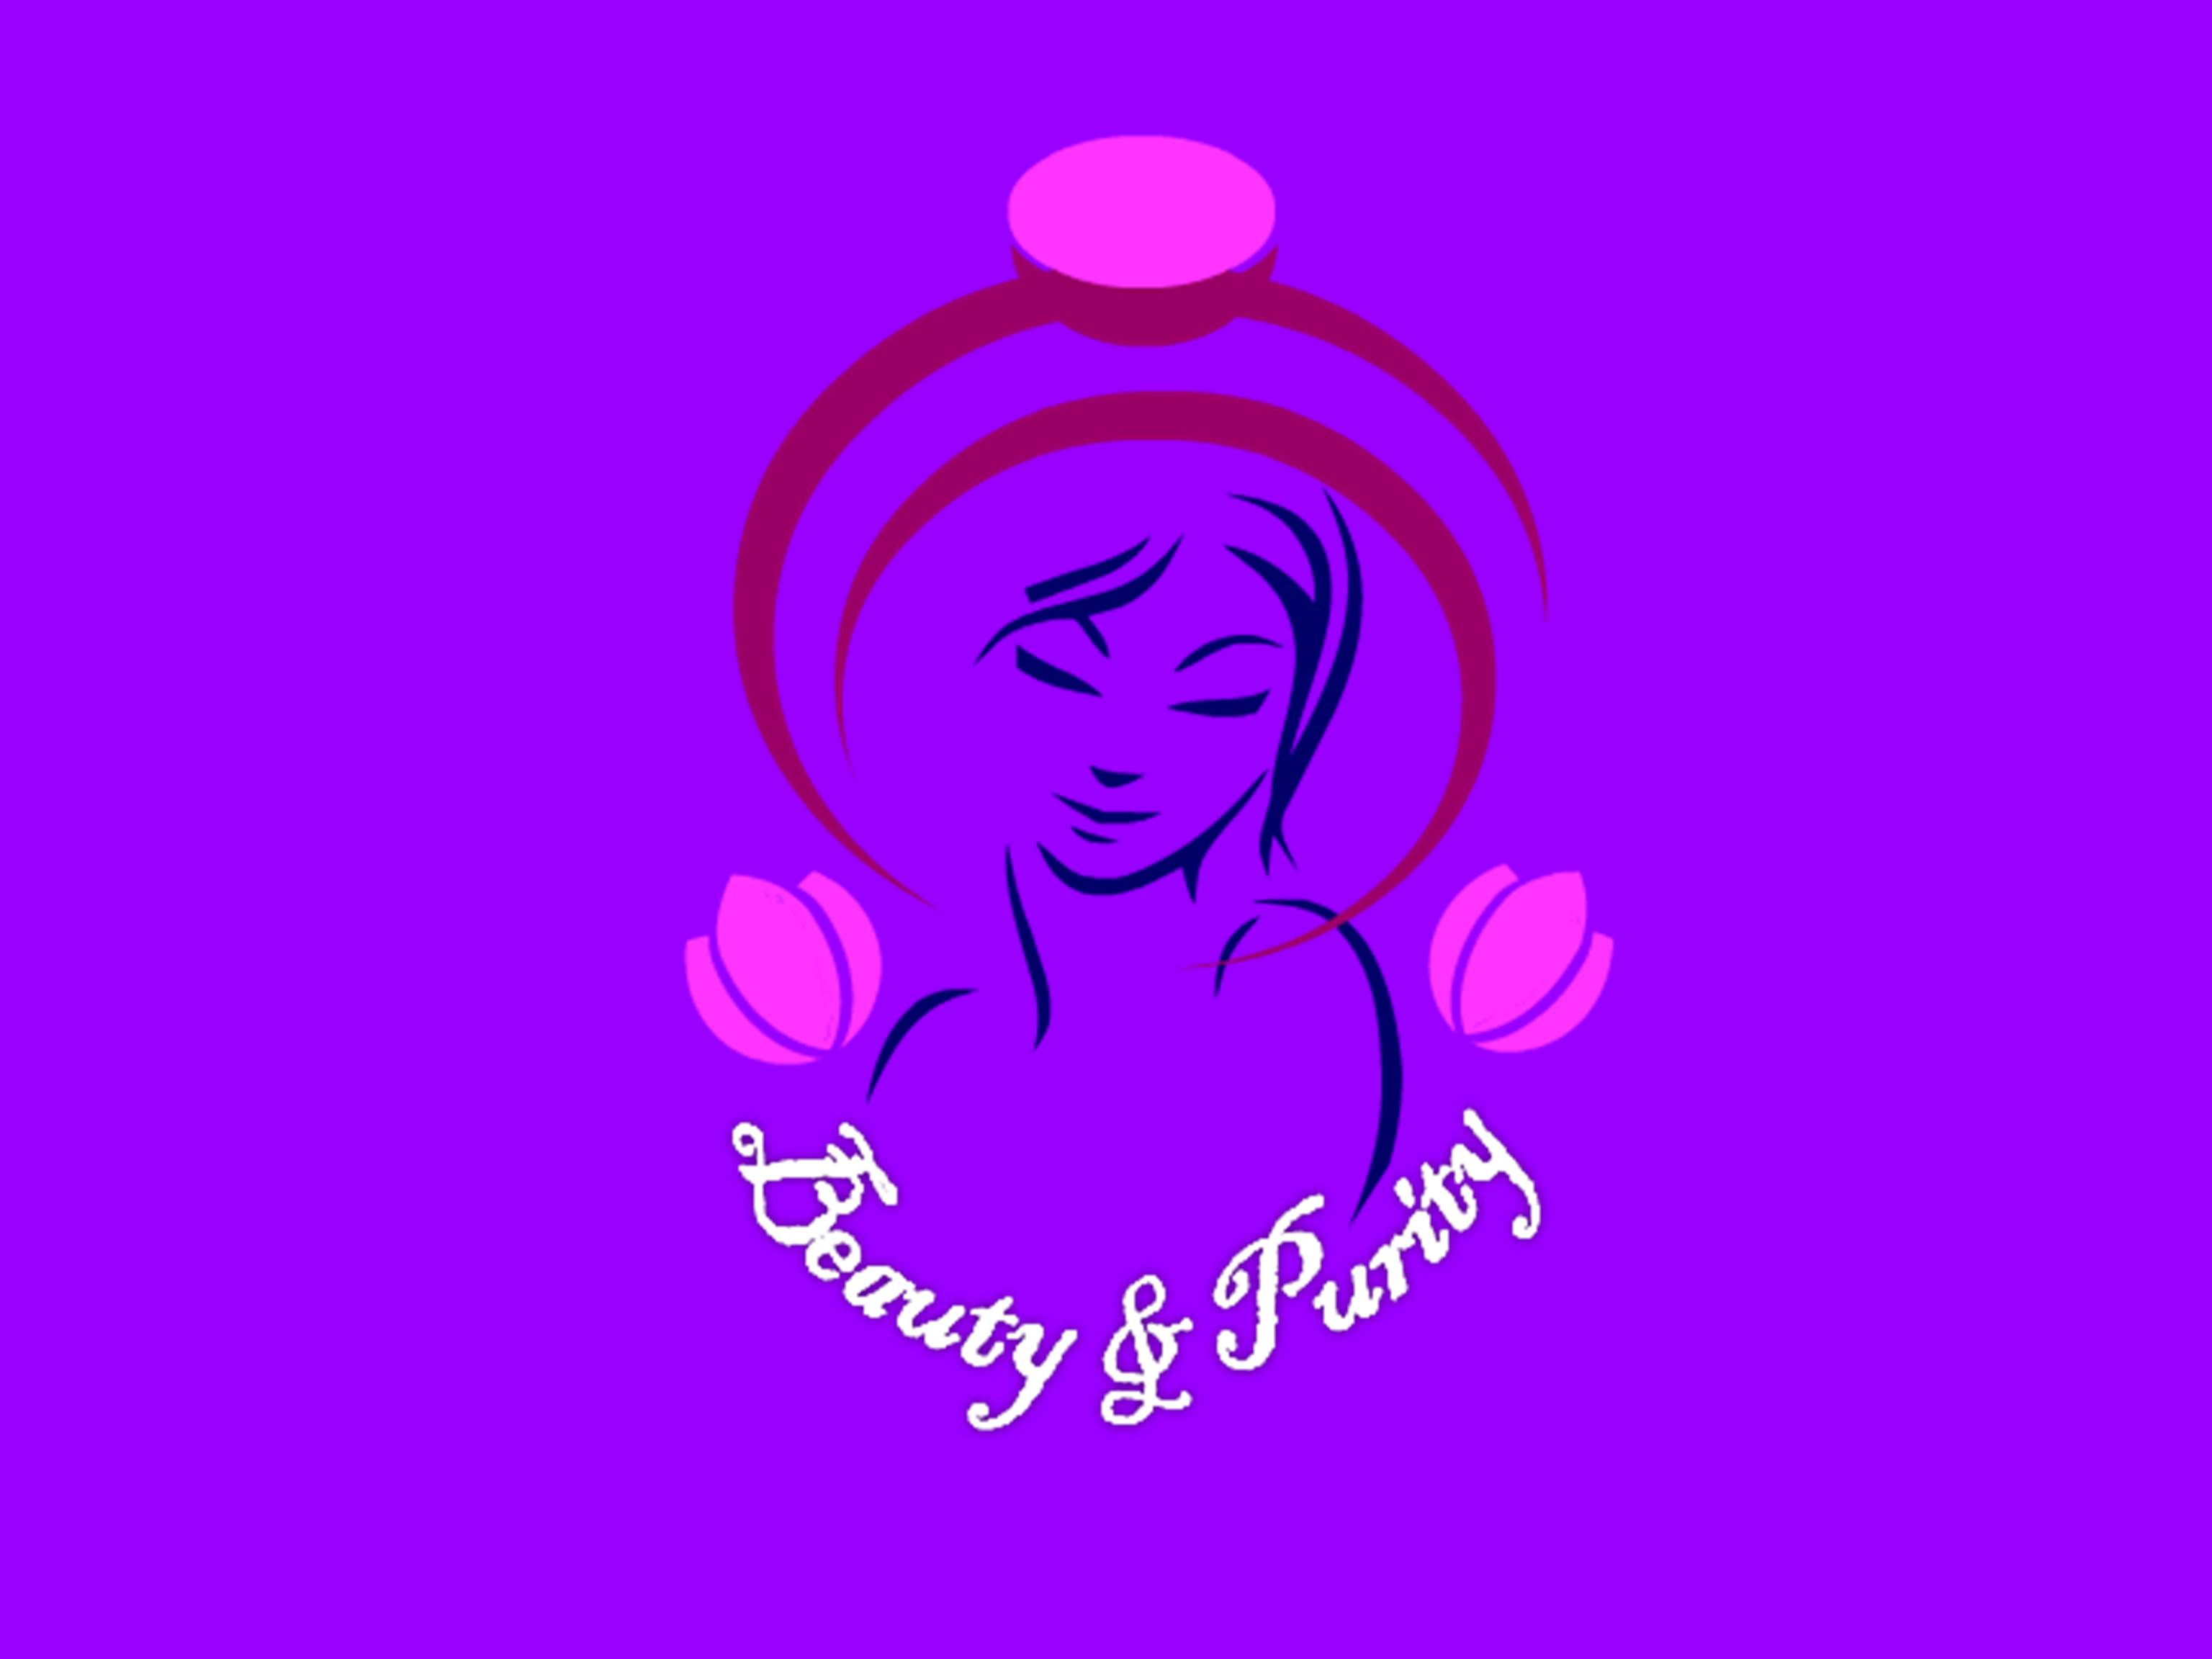 Universal Academy, Lily Beauty Salon & Spa (Beauty & Purity)